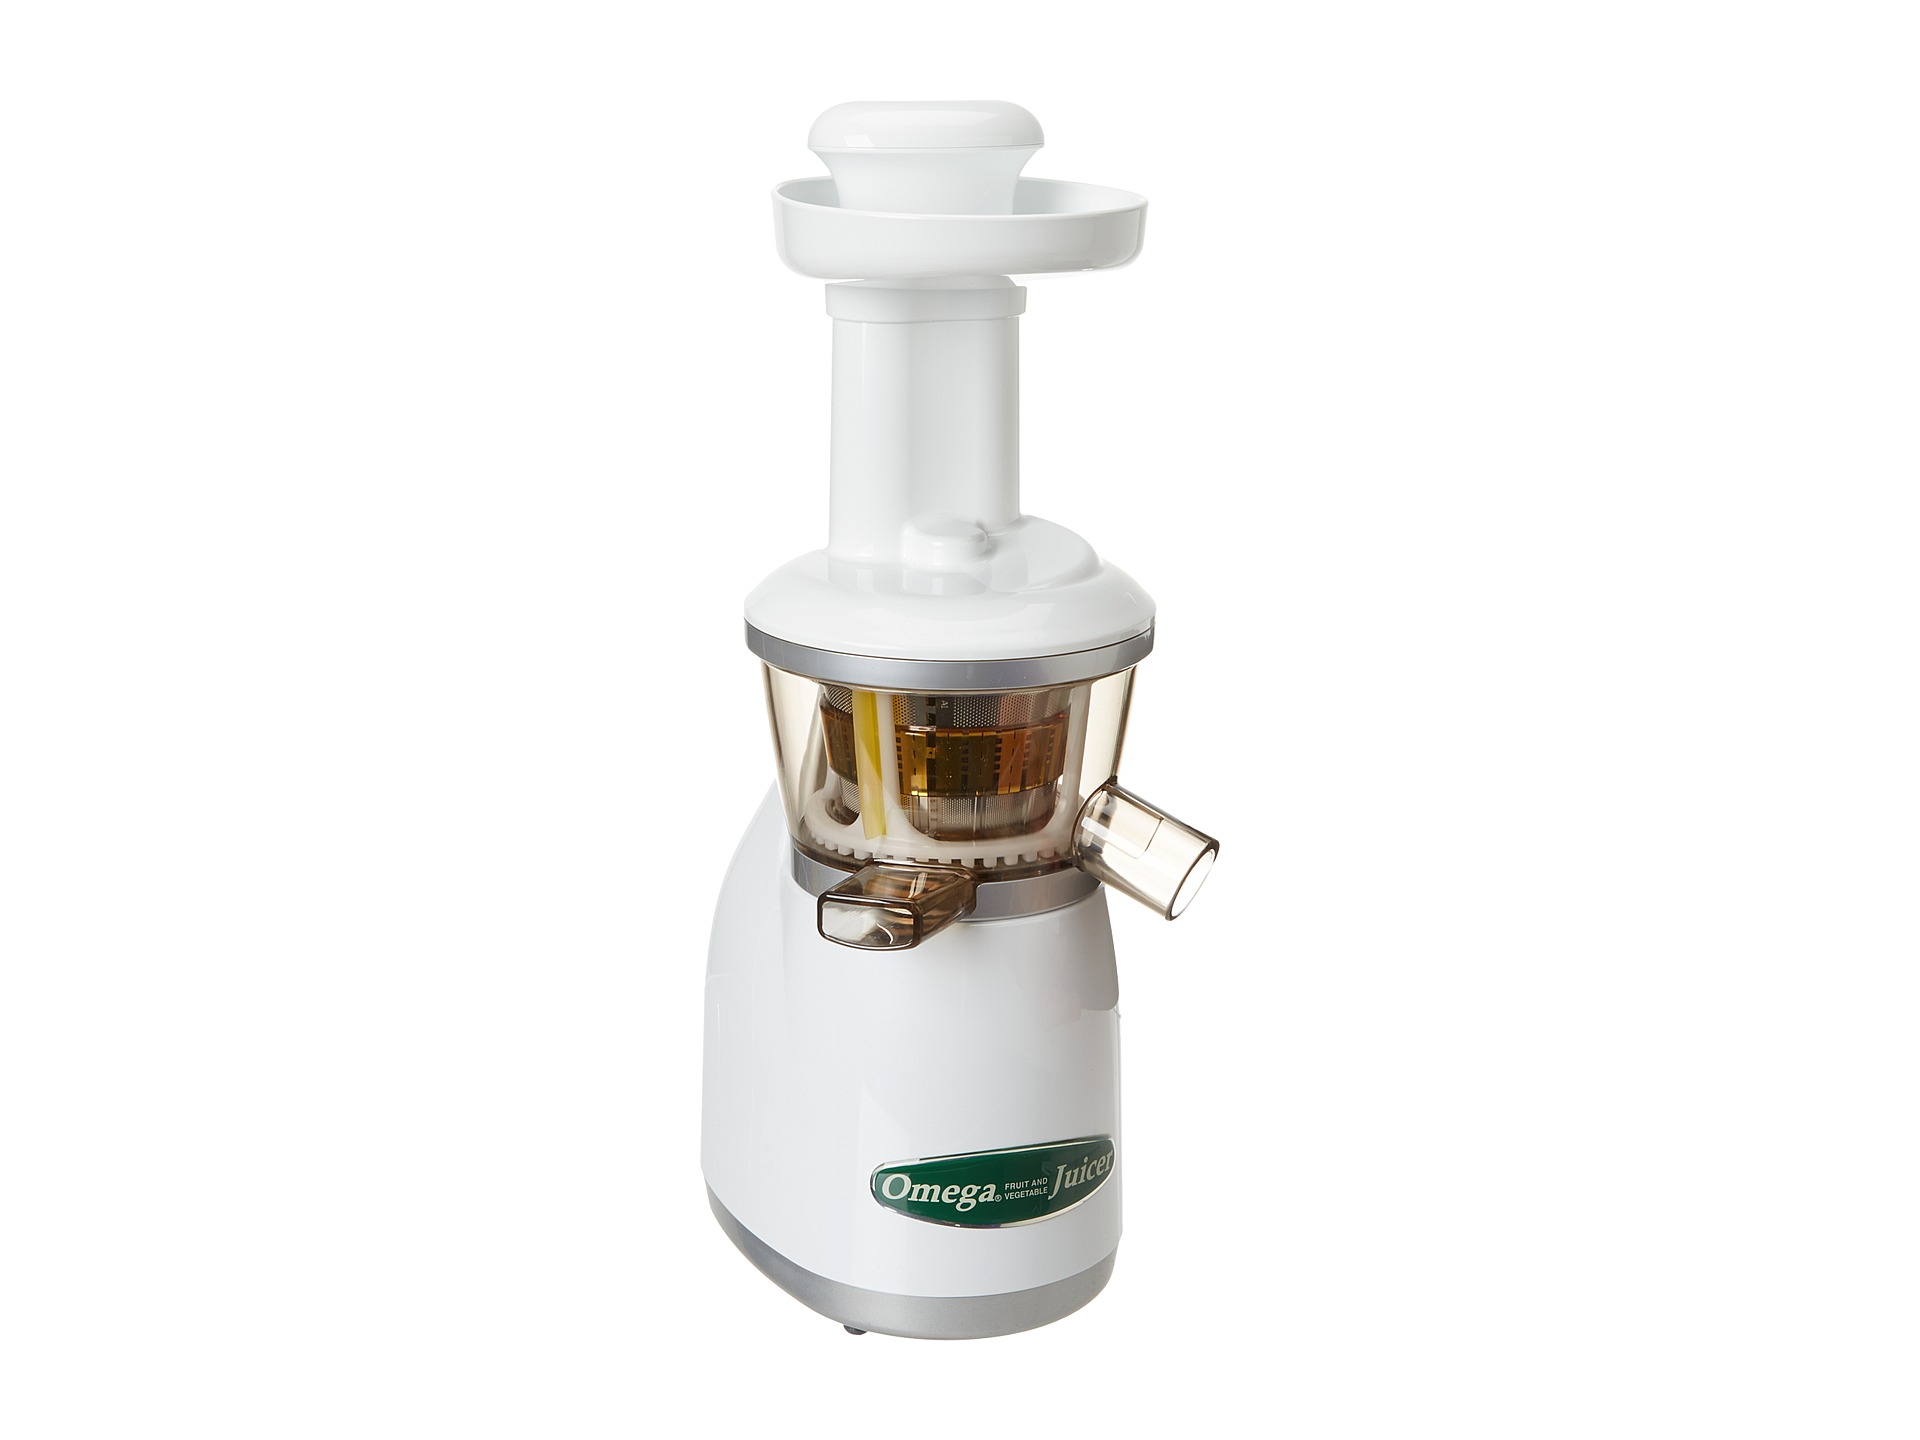 Omega vrt350 vert Low Speed Juicing System White Shipped Free at Zappos